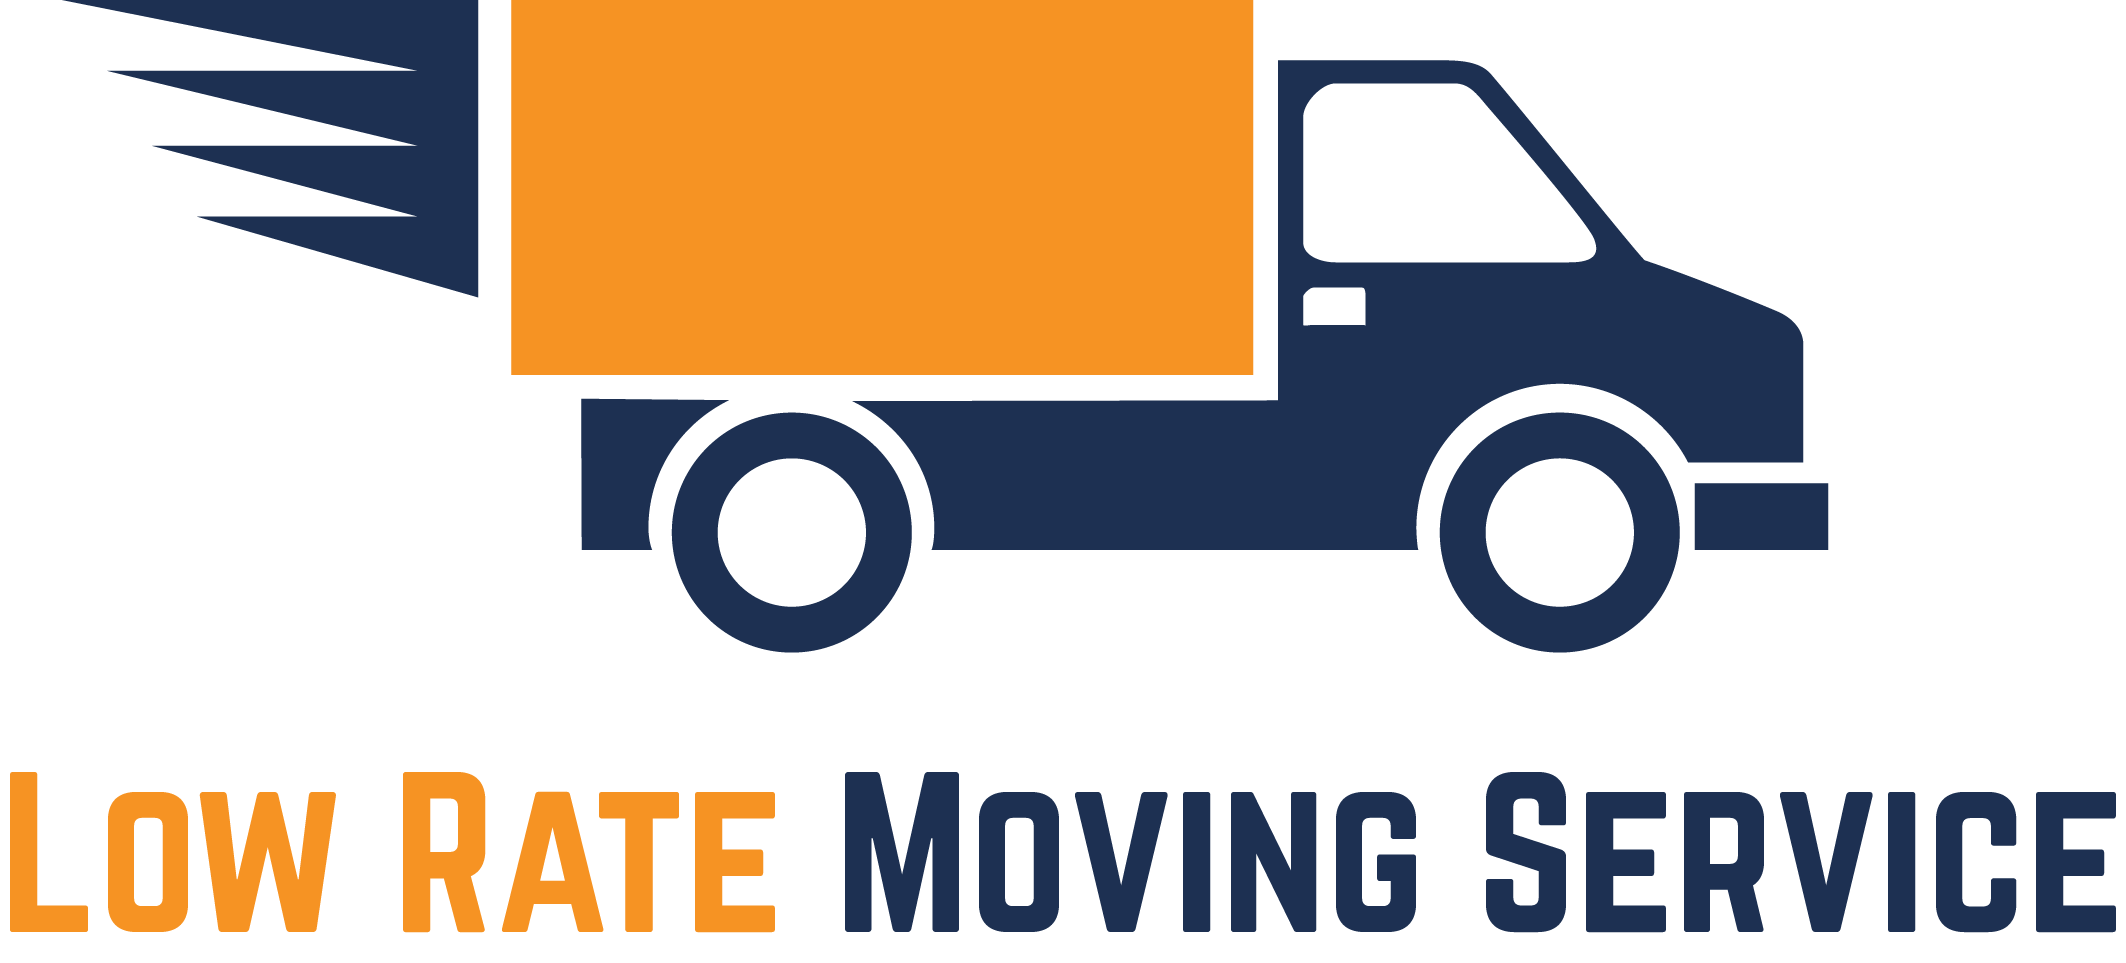 Low Rate Moving Service-Low Rate Moving Service